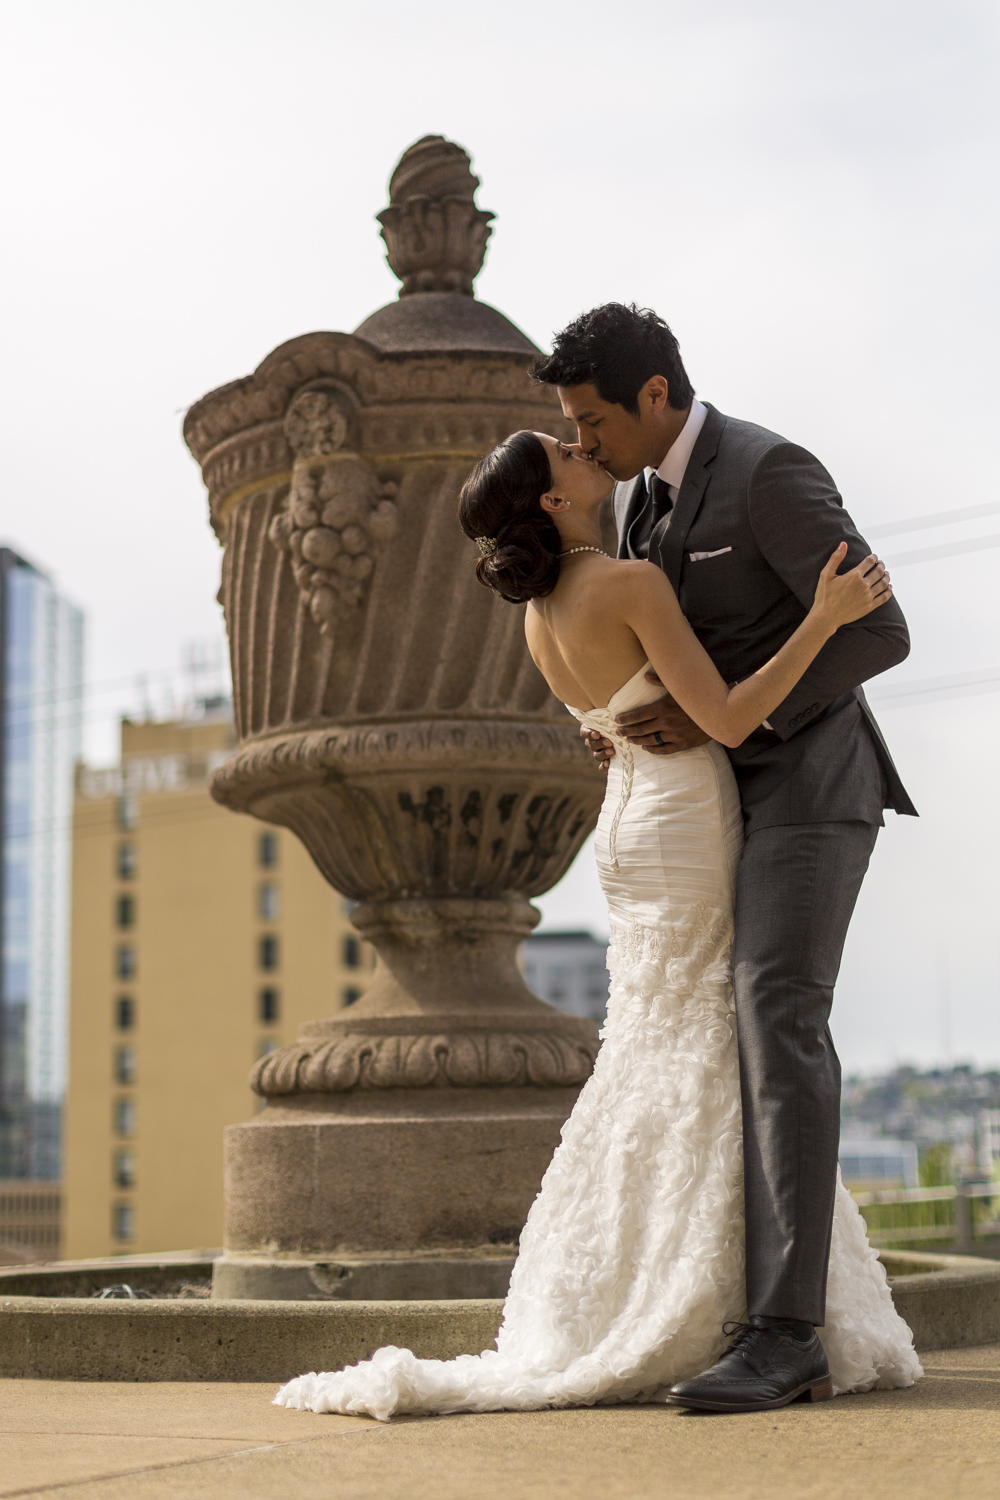 motifhotel_seattle_tacoma_pnw_photographer_wedding_photographer_weddingphotography_modernweddings_beautifulbride_seattlebride_bellevuebride_pnwbride_washington_hawaiianweddings-40.jpg